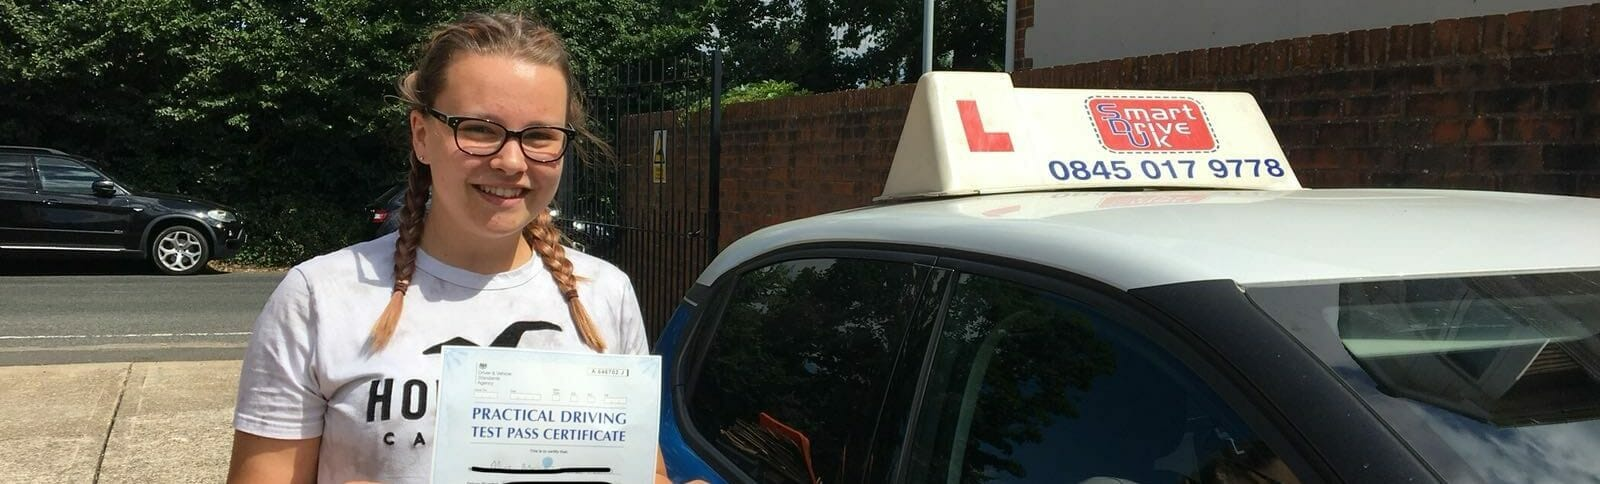 First Time Pass !! Congratulations to Megan from Worthing